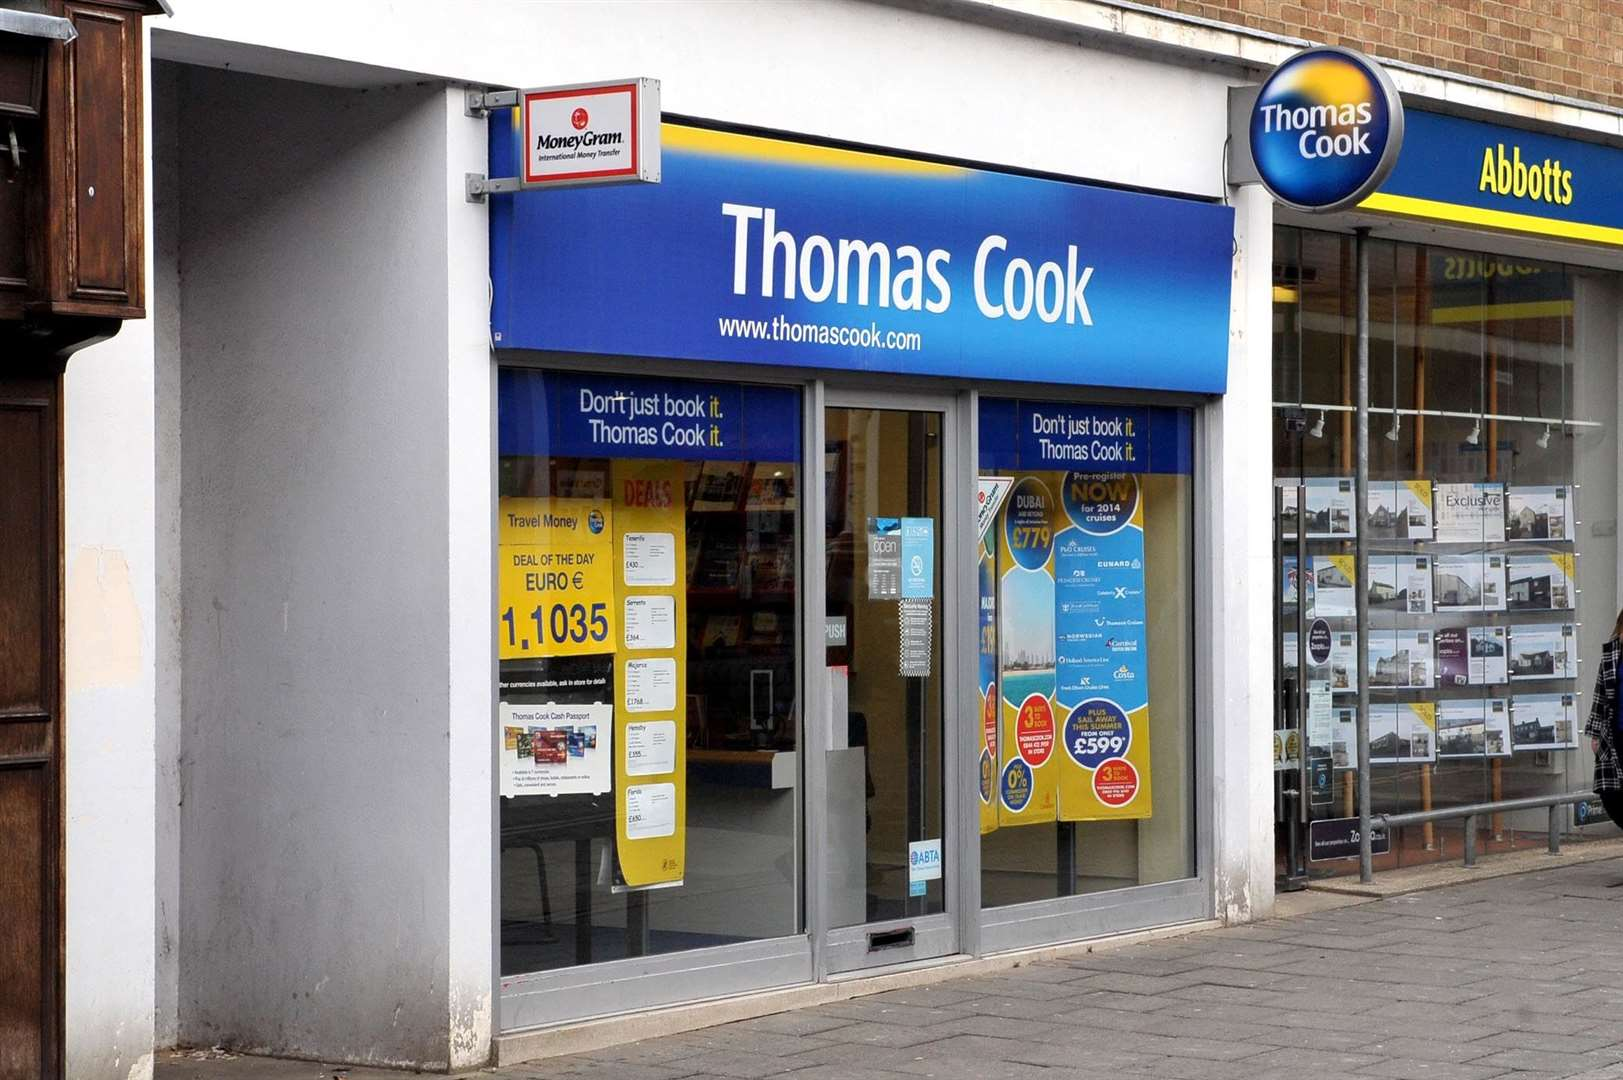 Thomas Cook seeks £200 million in extra funding to avoid collapse